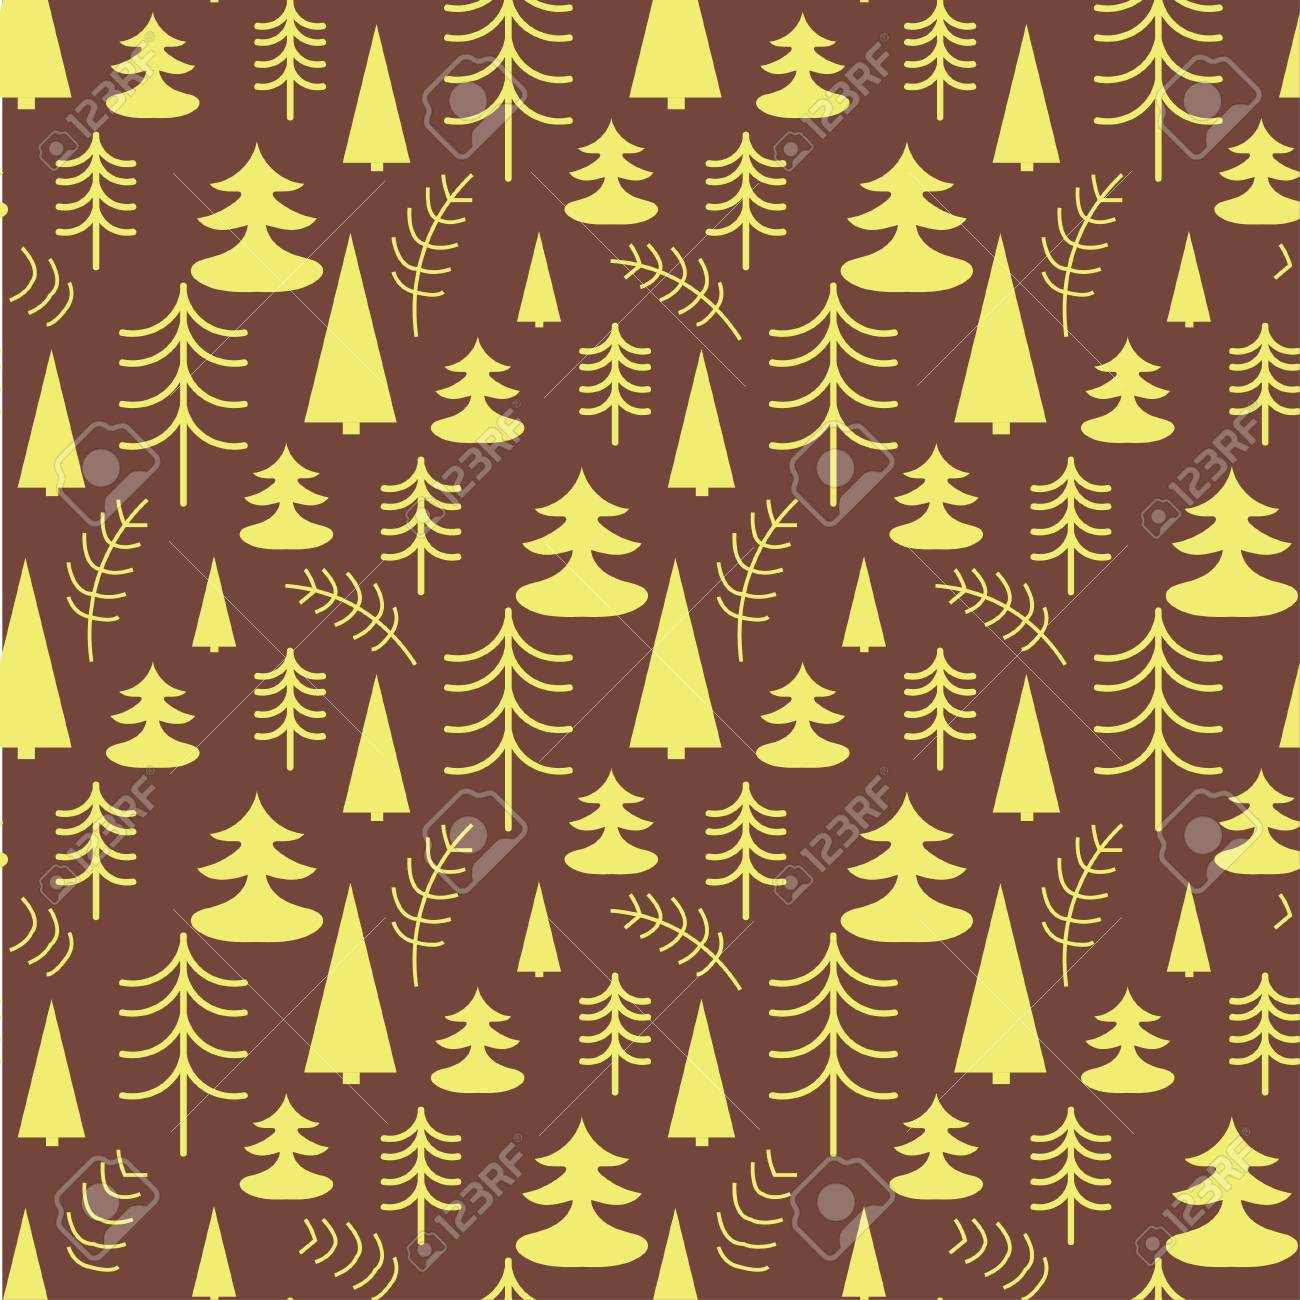 Seamless Christmas Pattern With Trees Ideal For Wrapping Paper